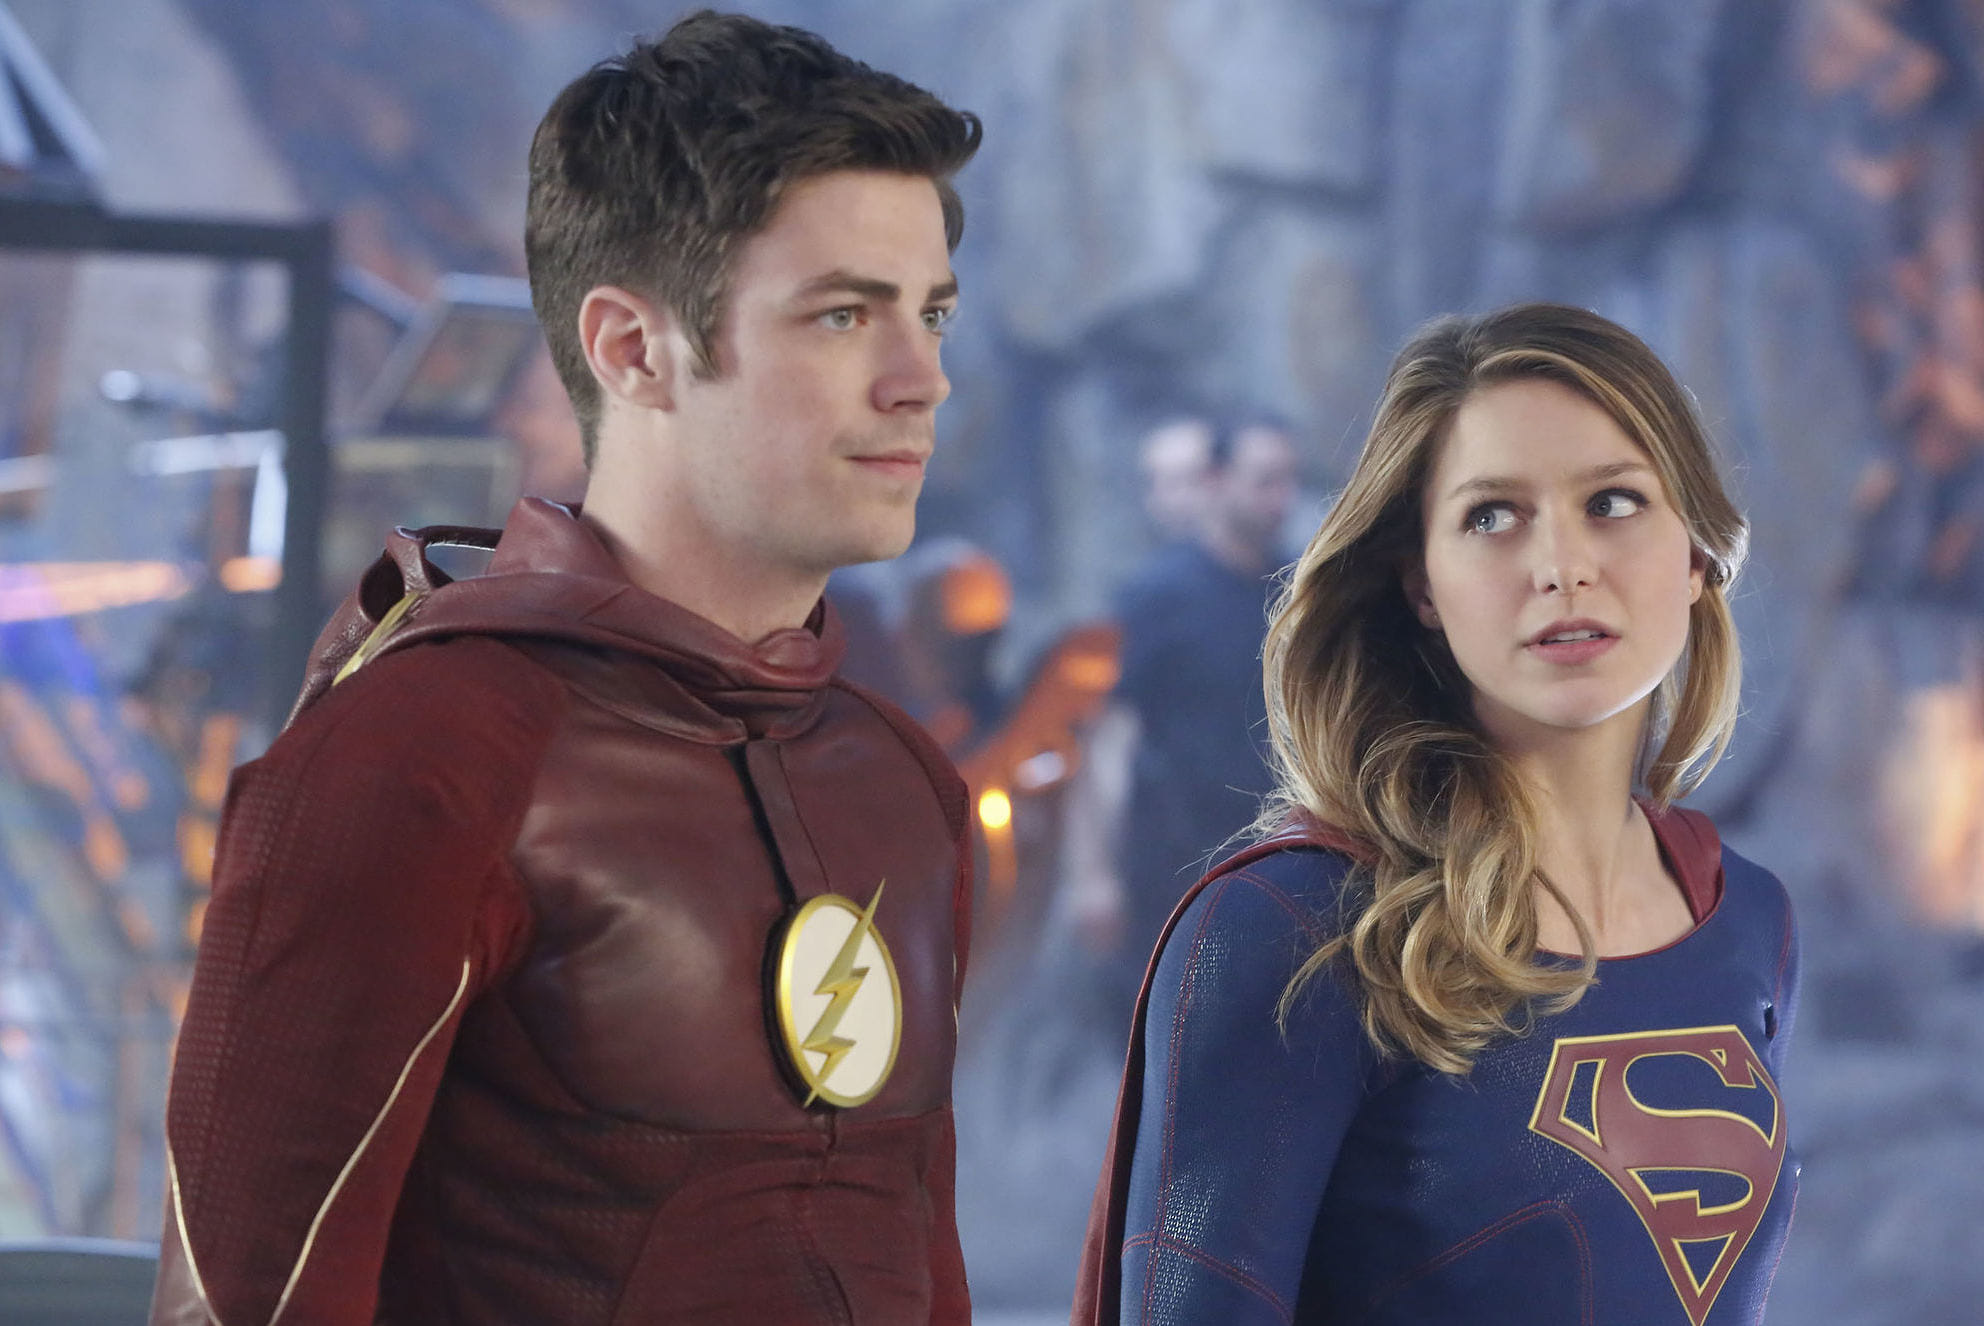 Will the actions of The Flash bring Supergirl into The CW Berlanti DC Universe now that she's switched channels?